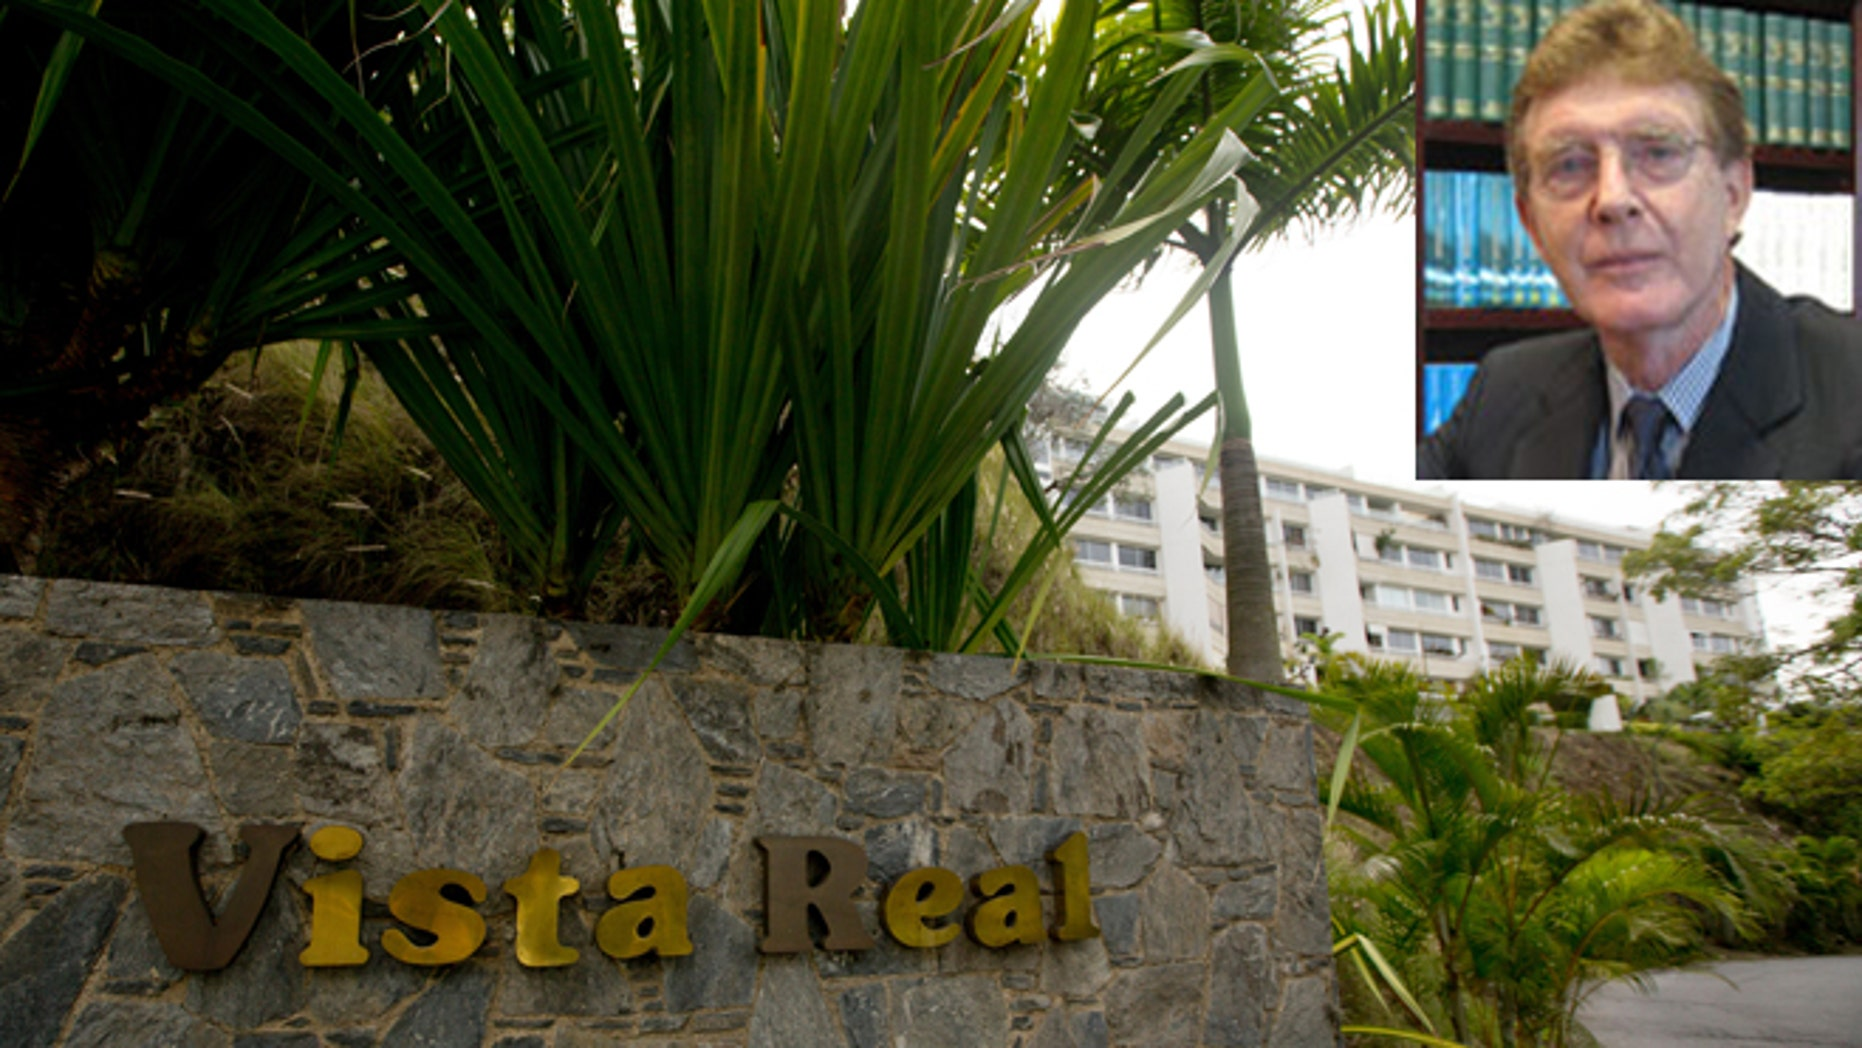 The main entrance of the Vista Real building complex, where John Ralston Pate (inset), was found dead on Sunday, Aug. 9, 2015. (Photos: Main, AP Photo/Fernando Llano; inset, via De Sola Pate & Brown)